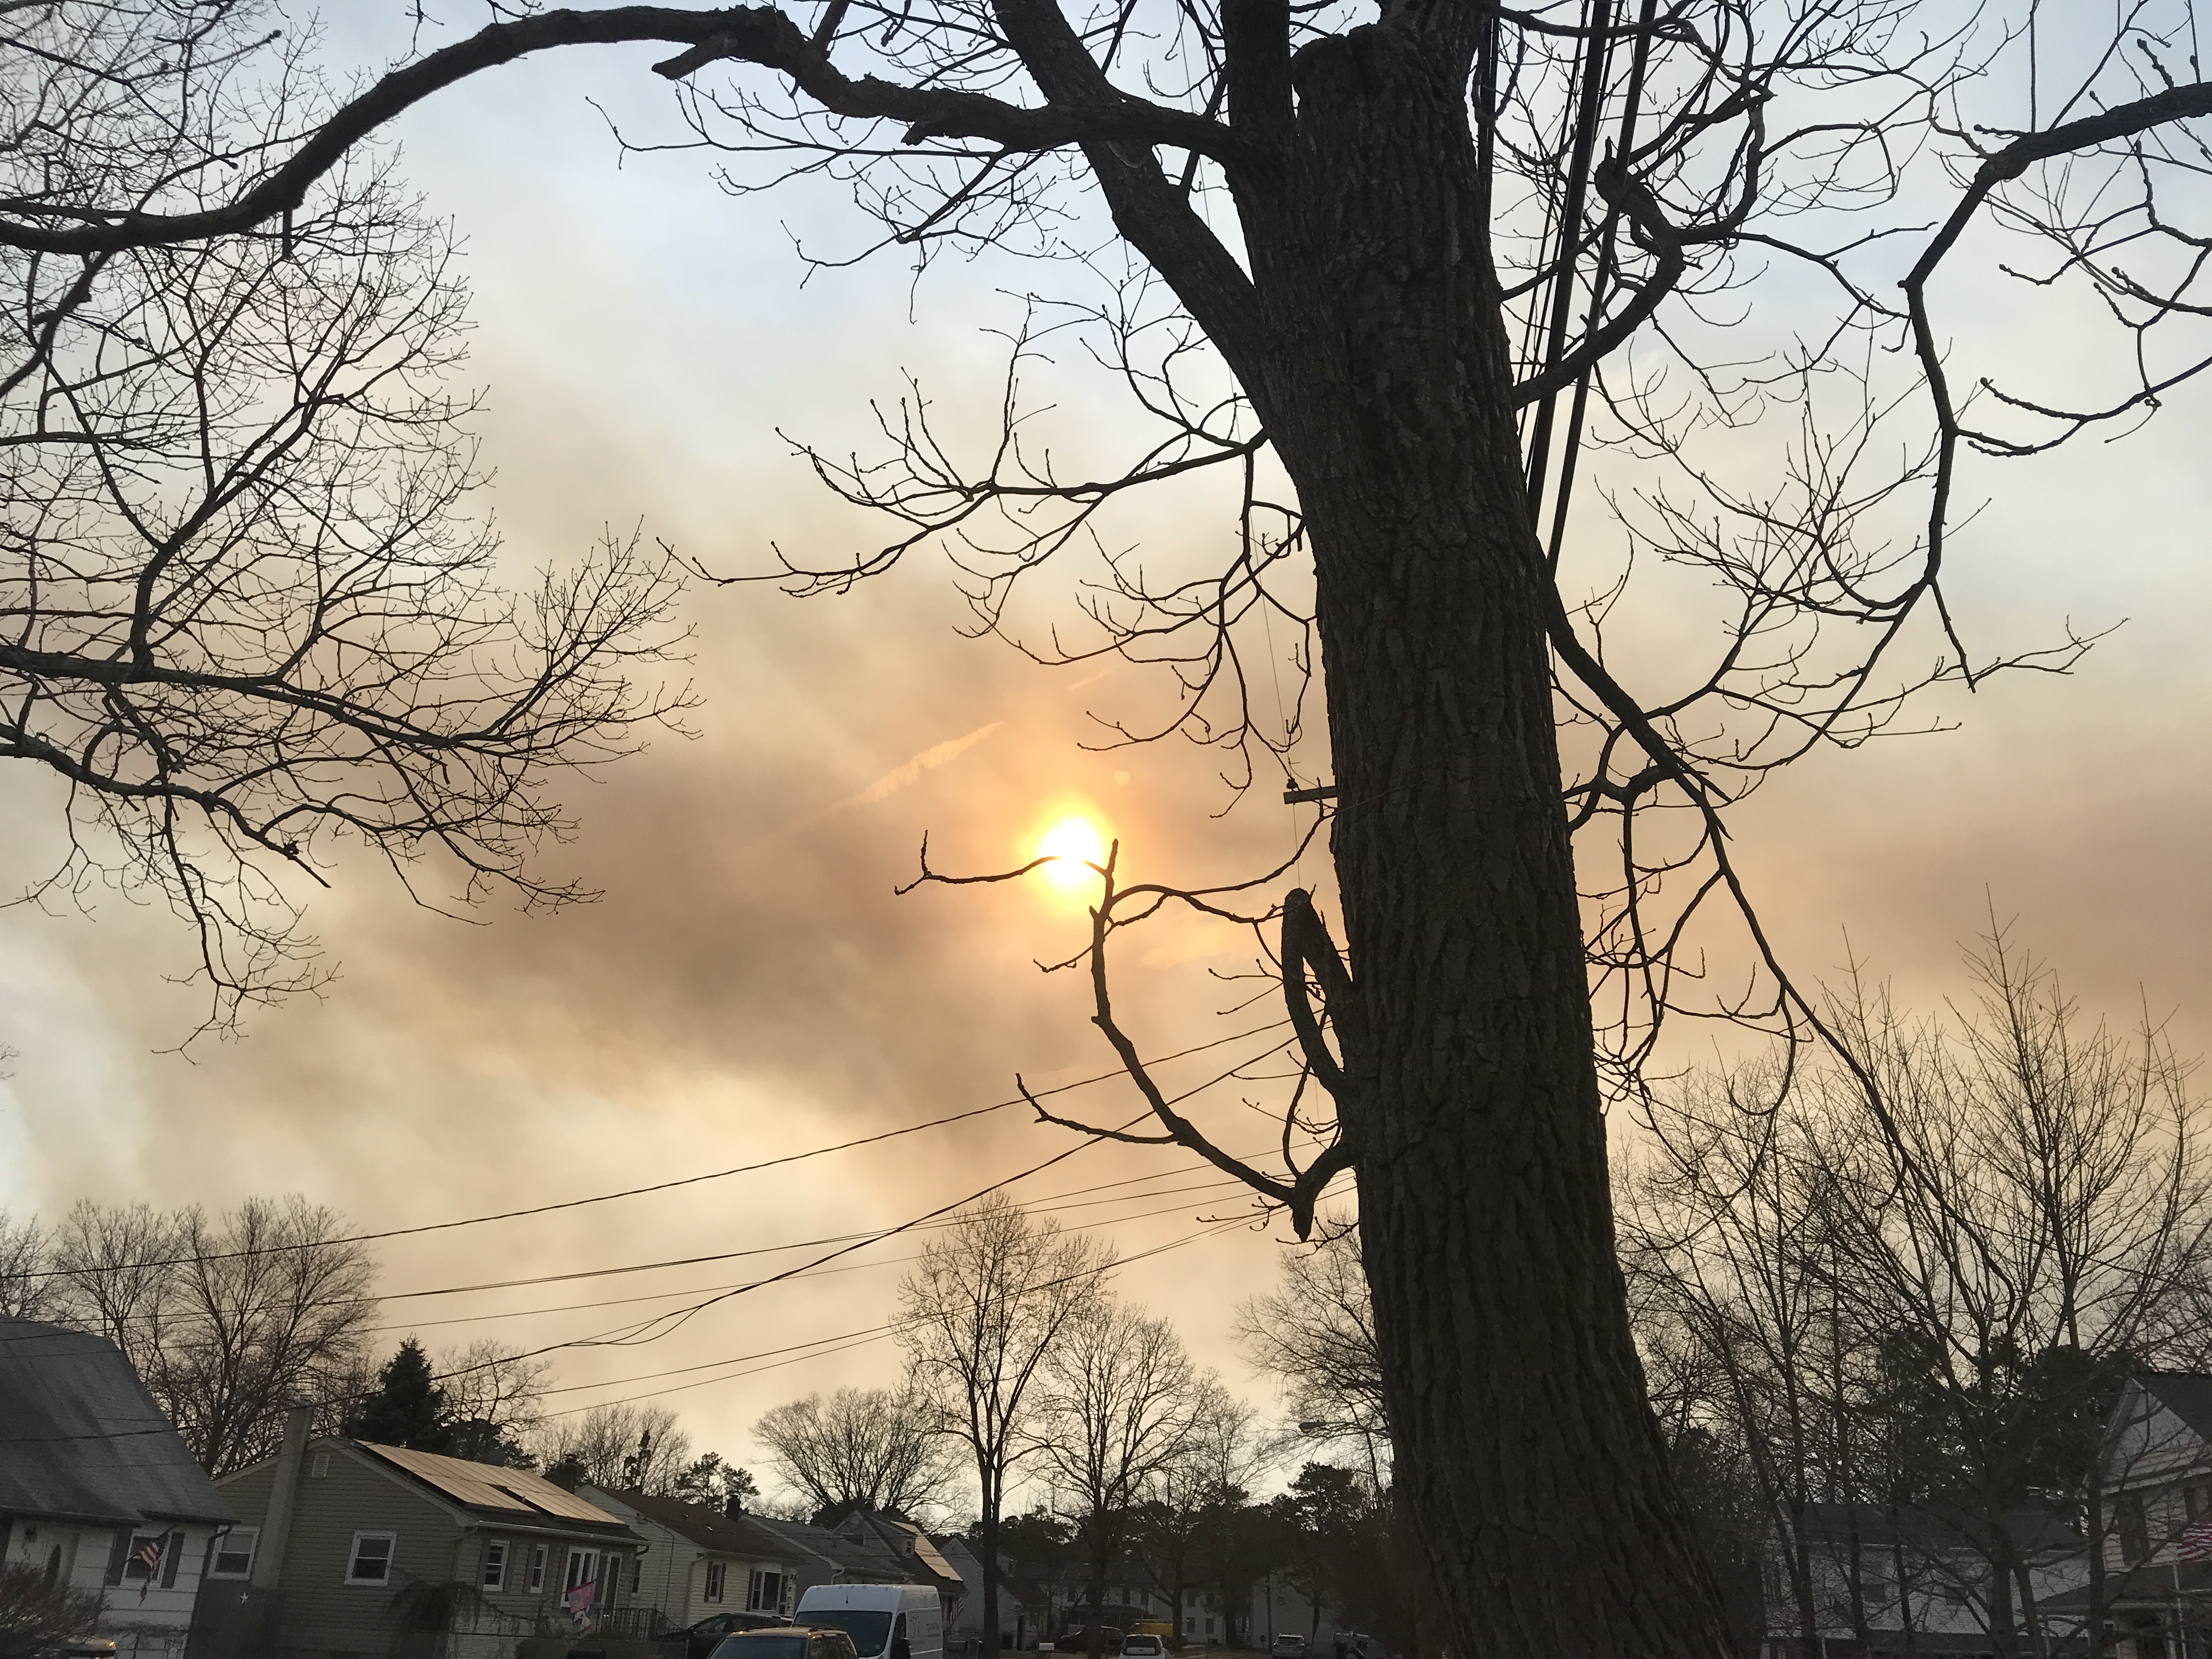 A forest fire in the New Jersey Pinelands, March 30, 2019. (Photo: Daniel Nee)